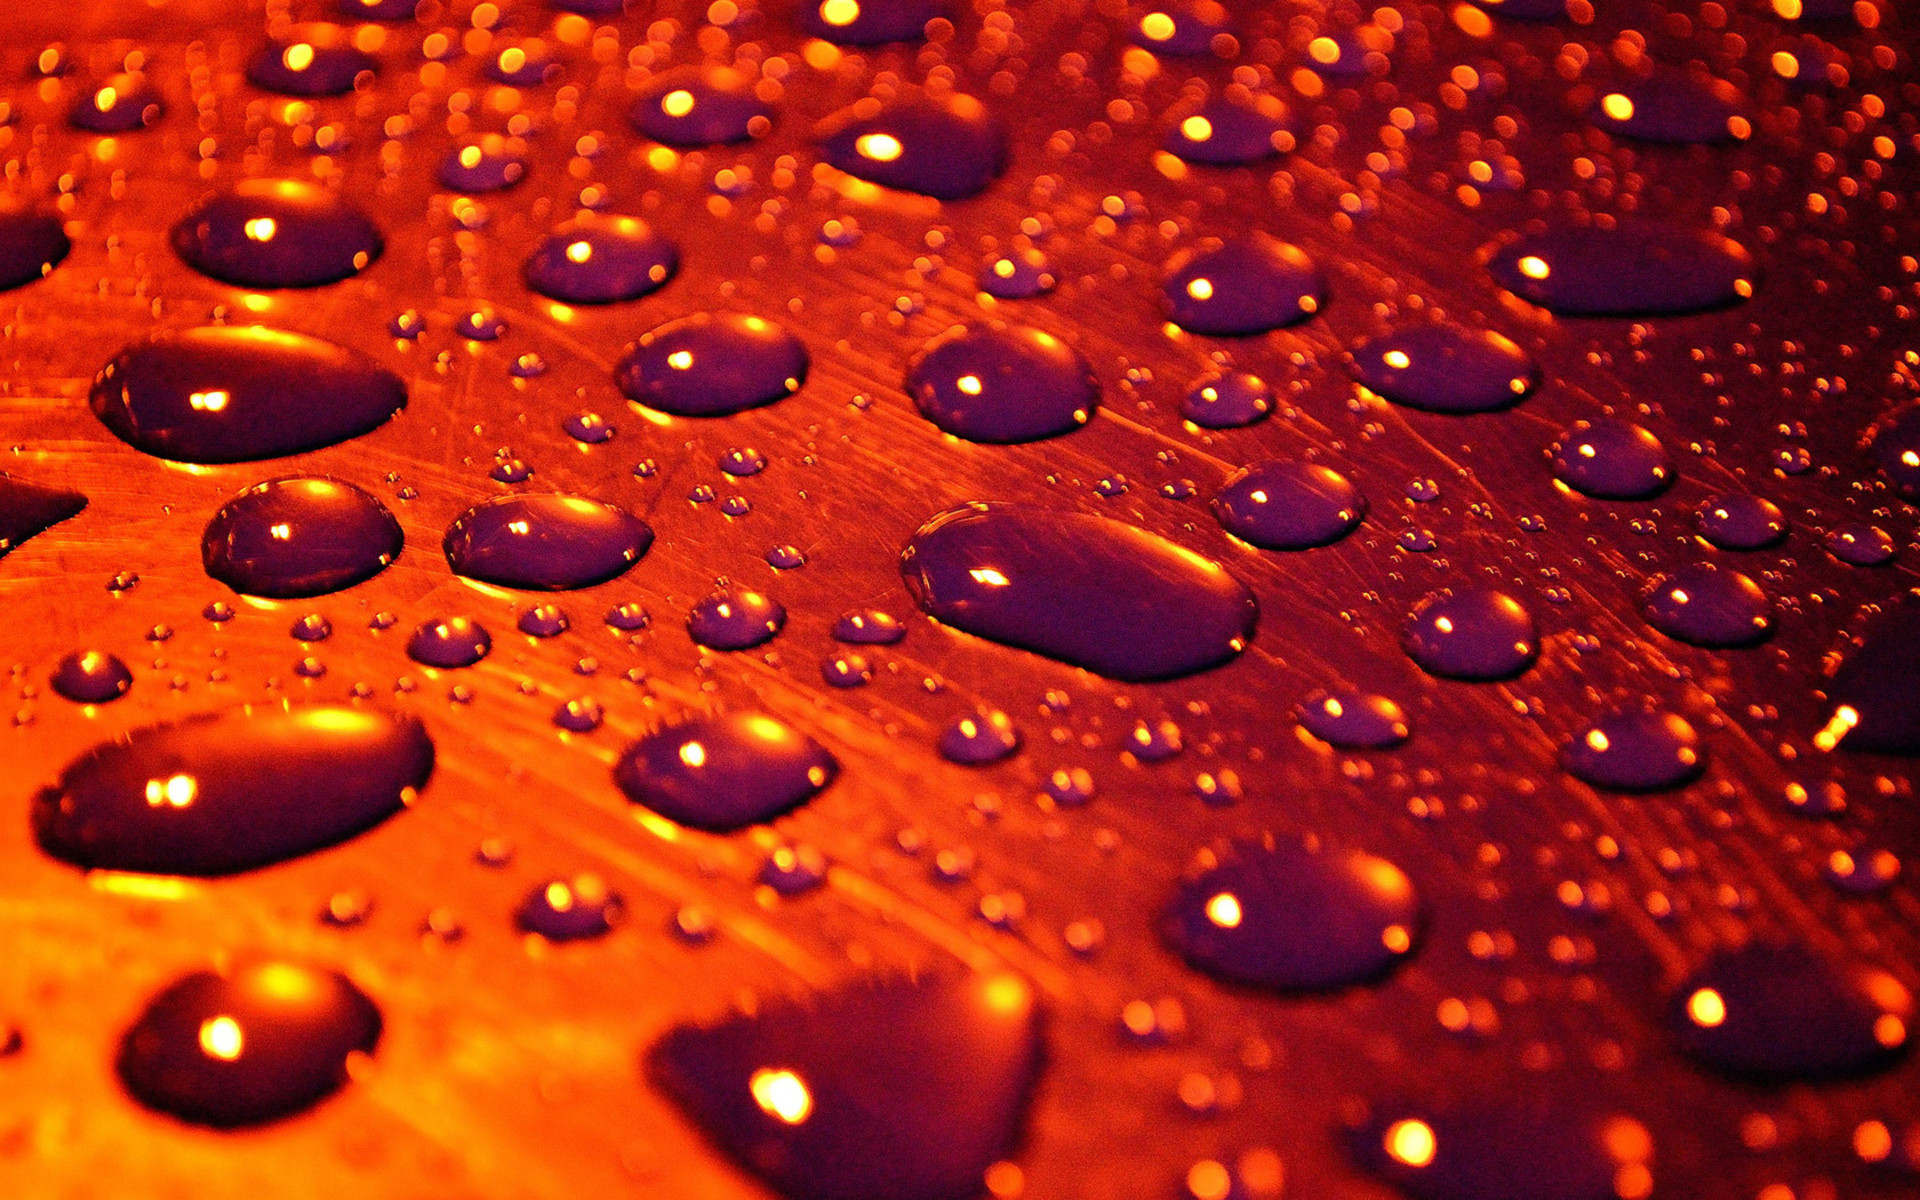 Res: 1920x1200, Water Droplets Wallpapers 12 - 1920 X 1200